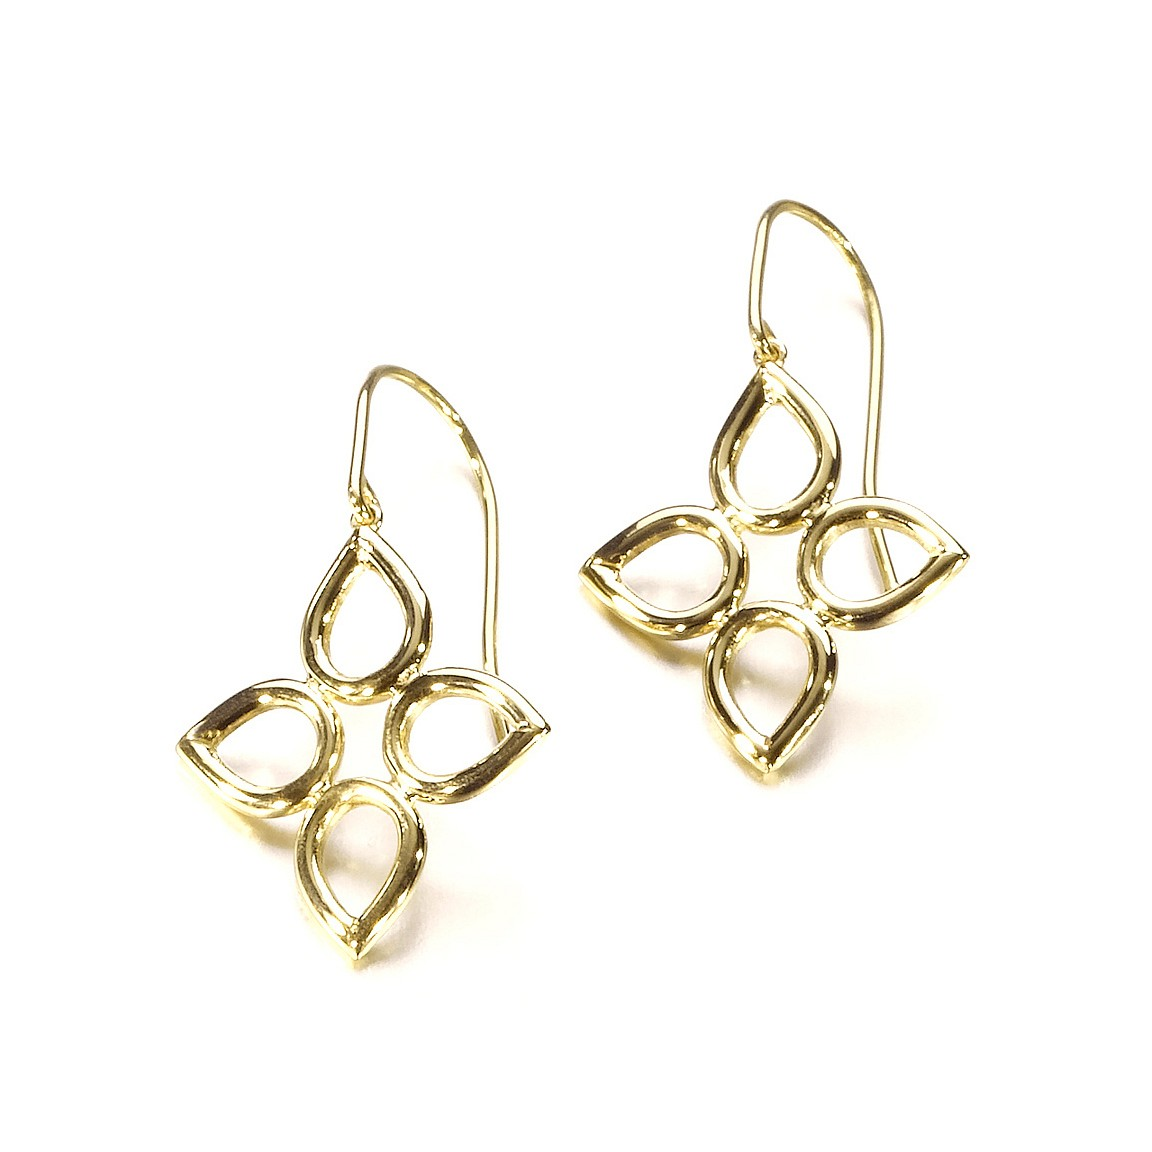 Sevilla wire earrings in 18k yellow or white gold